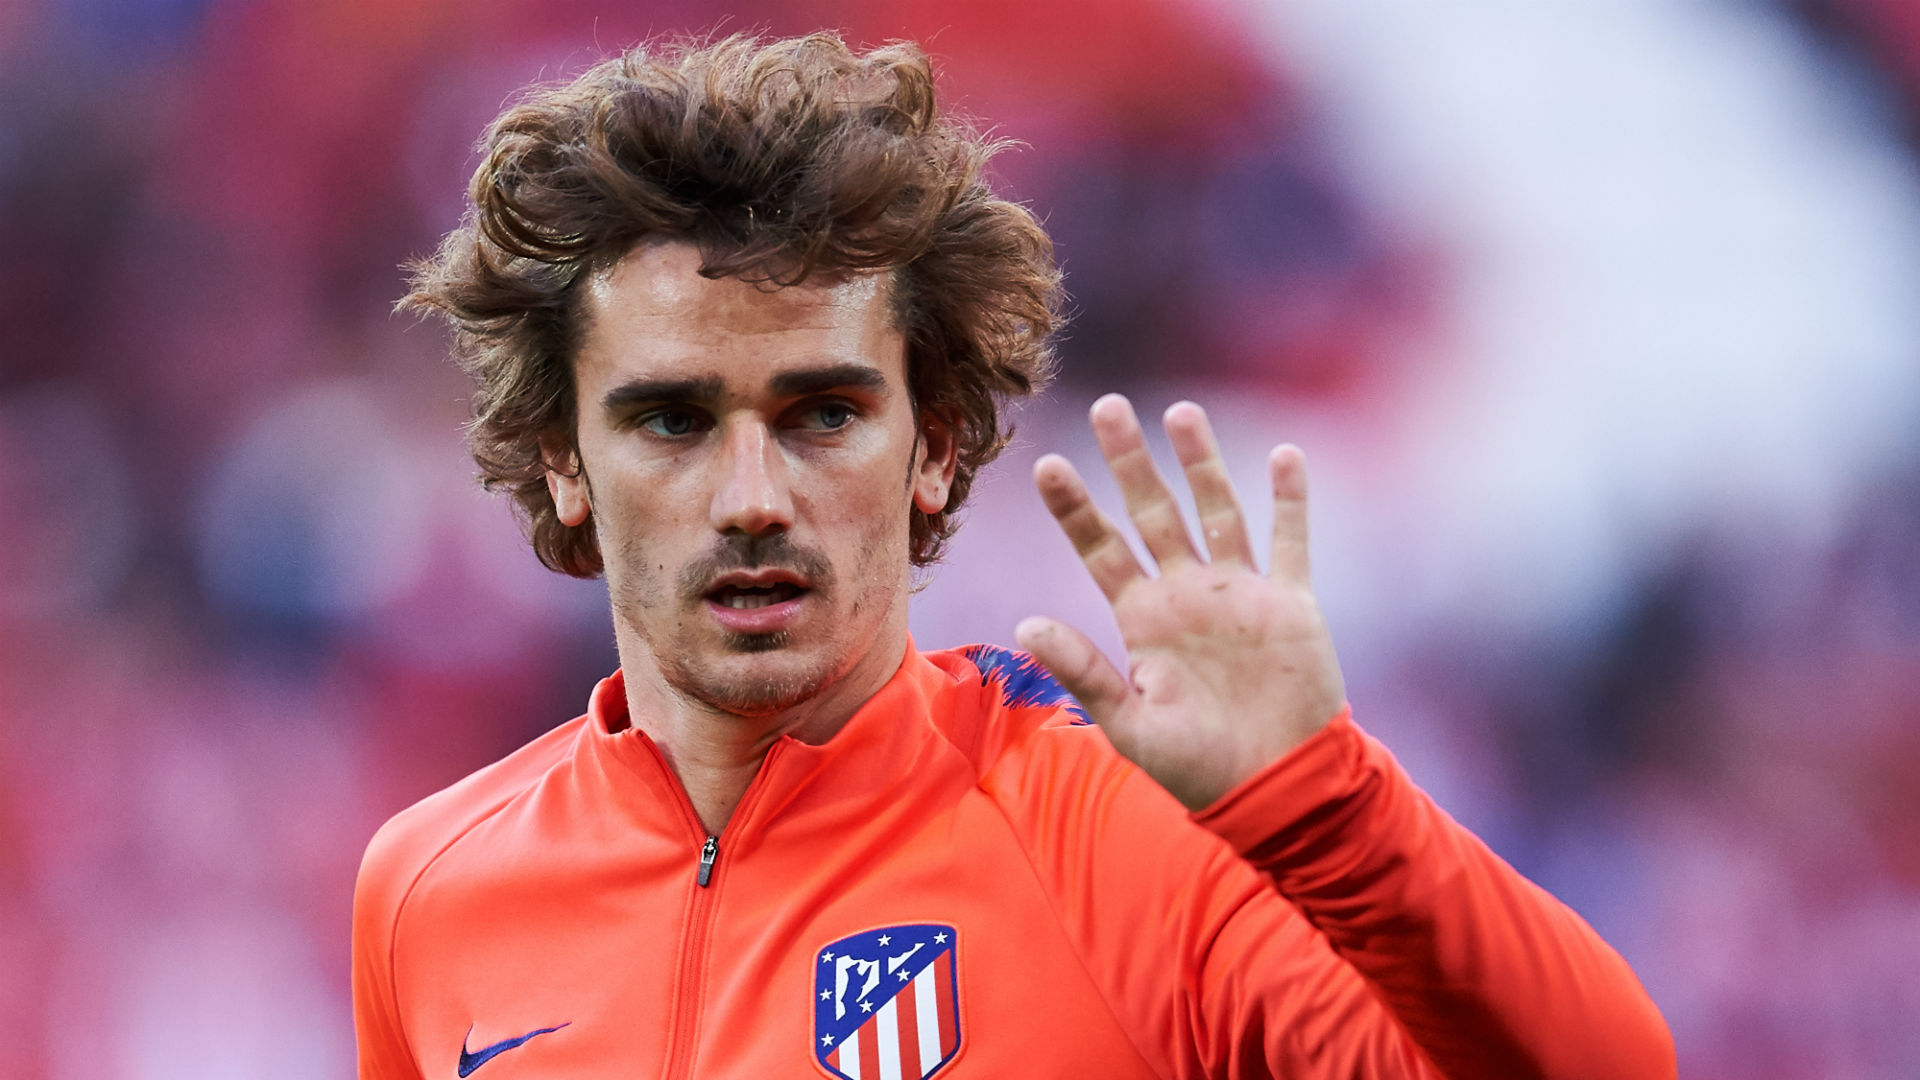 Griezmann can decide if he wants Atletico farewell – Cerezo